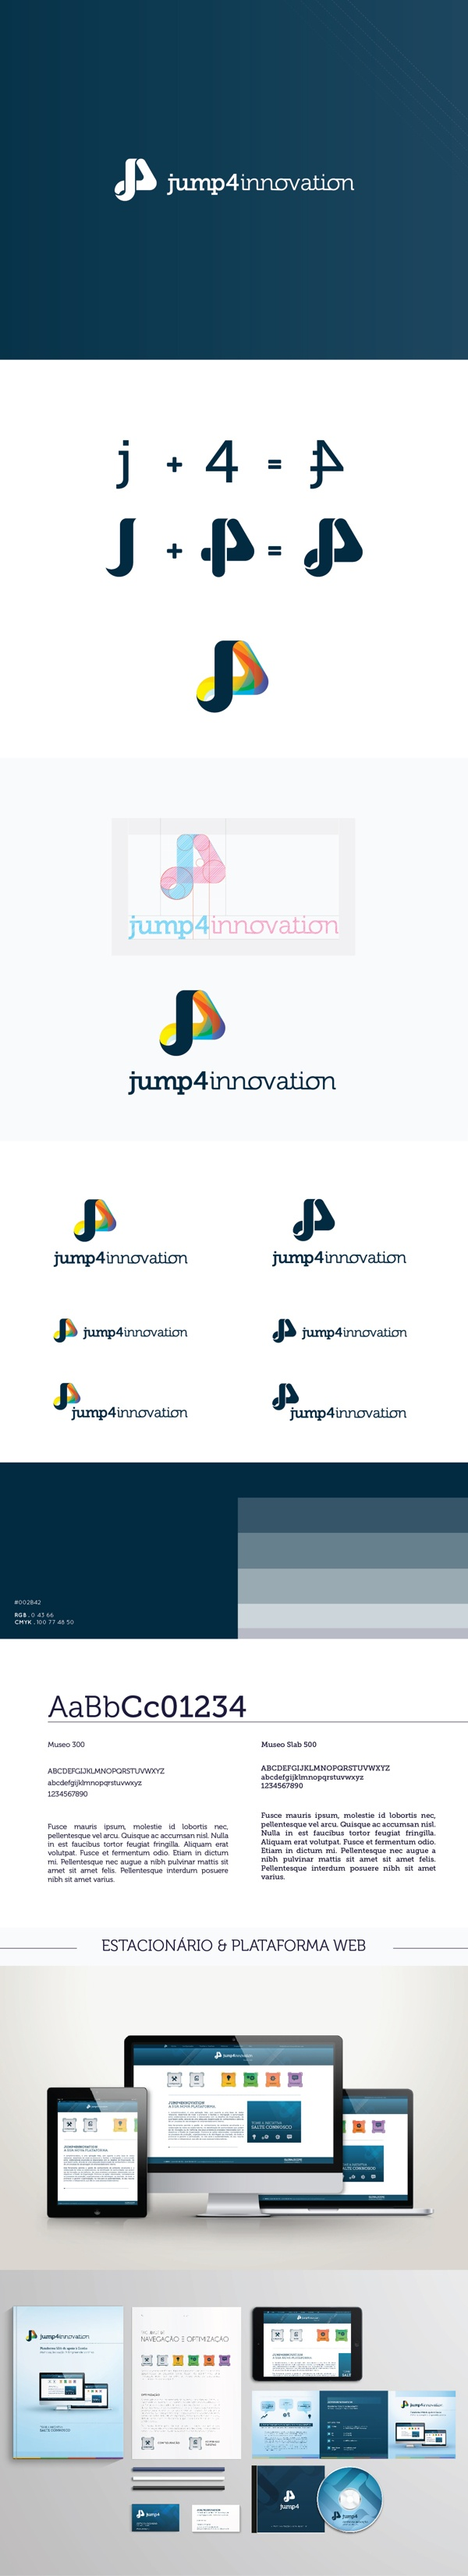 Jump4Innovation by Ana Castela, via Behance